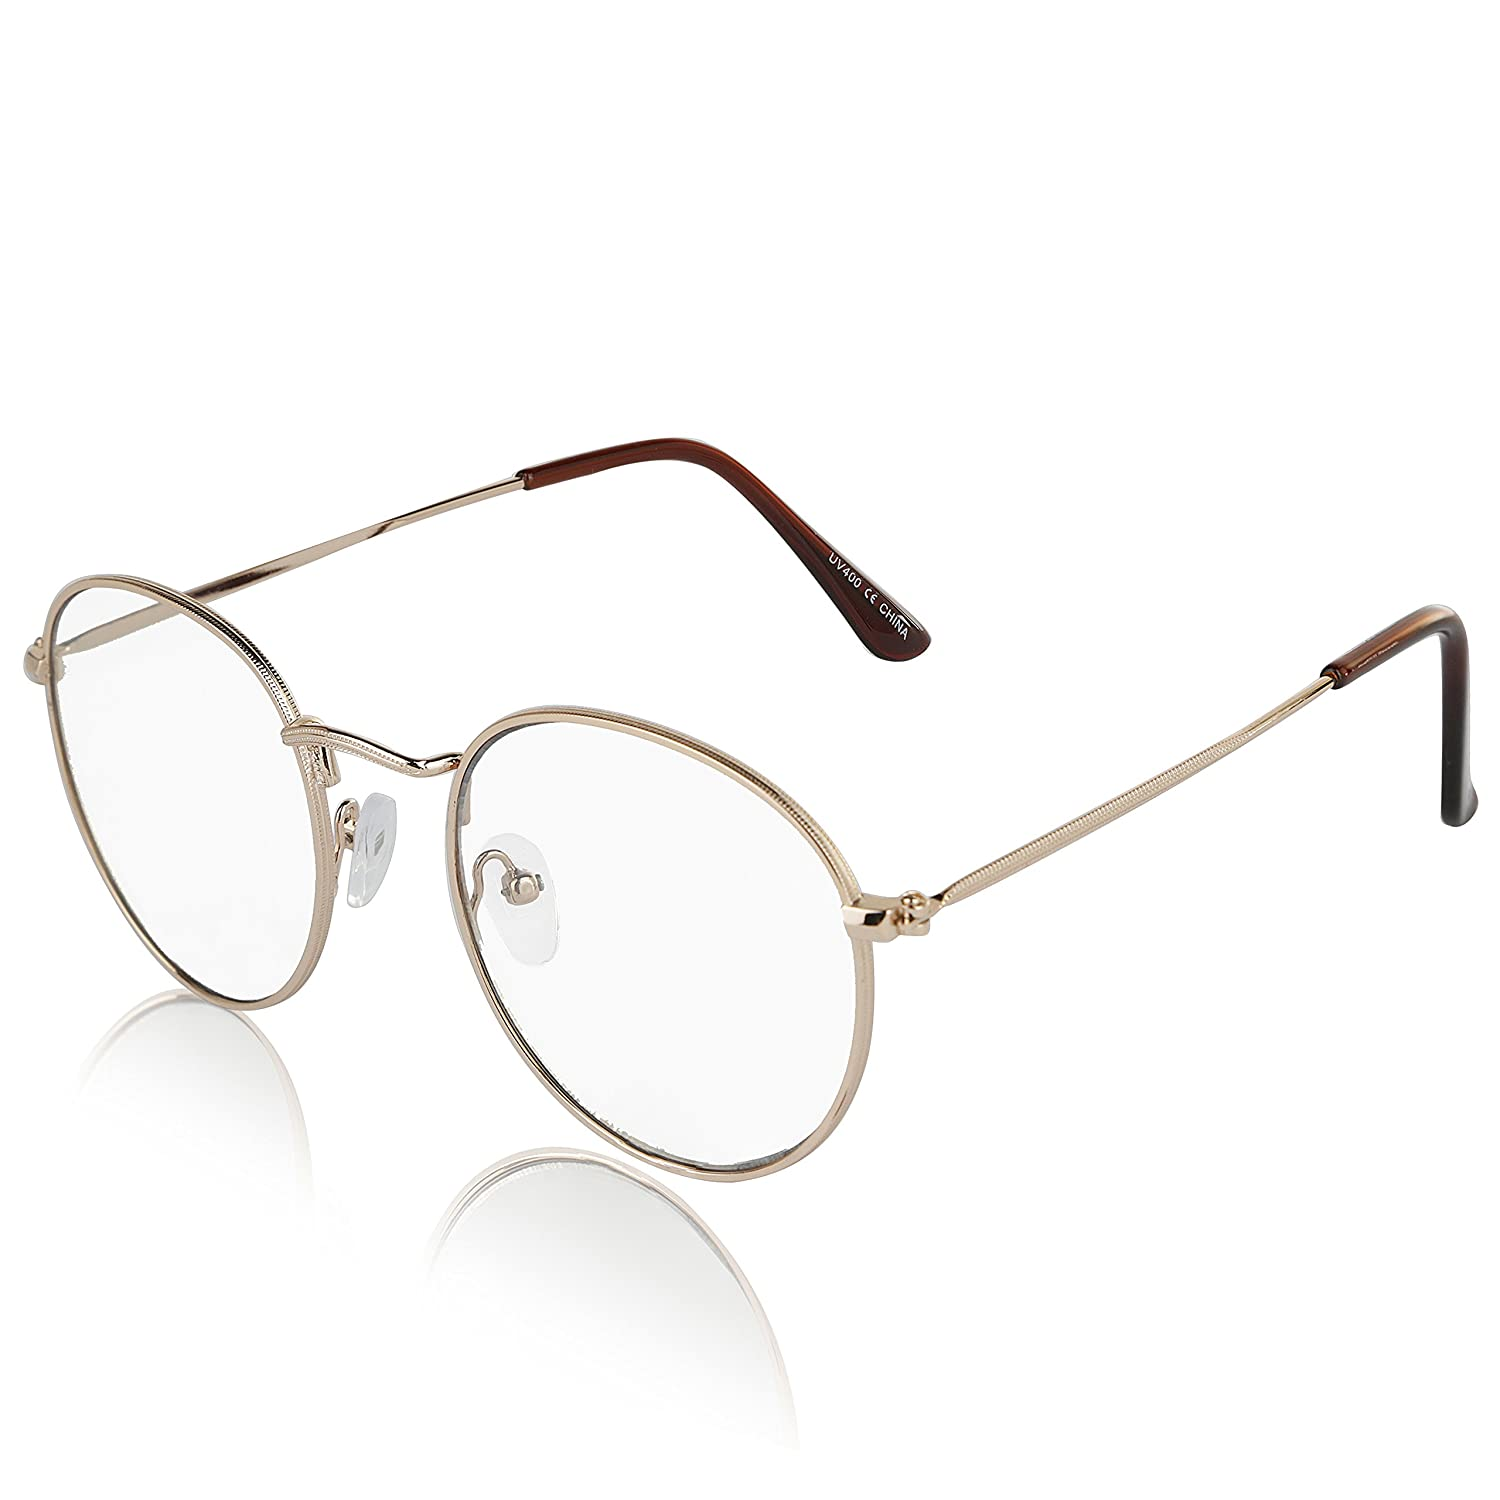 86d1ec131 Amazon.com: Non Prescription Retro Fake Clear Lens Gold Metal Frame  Eyeglasses Woman UV400: Clothing